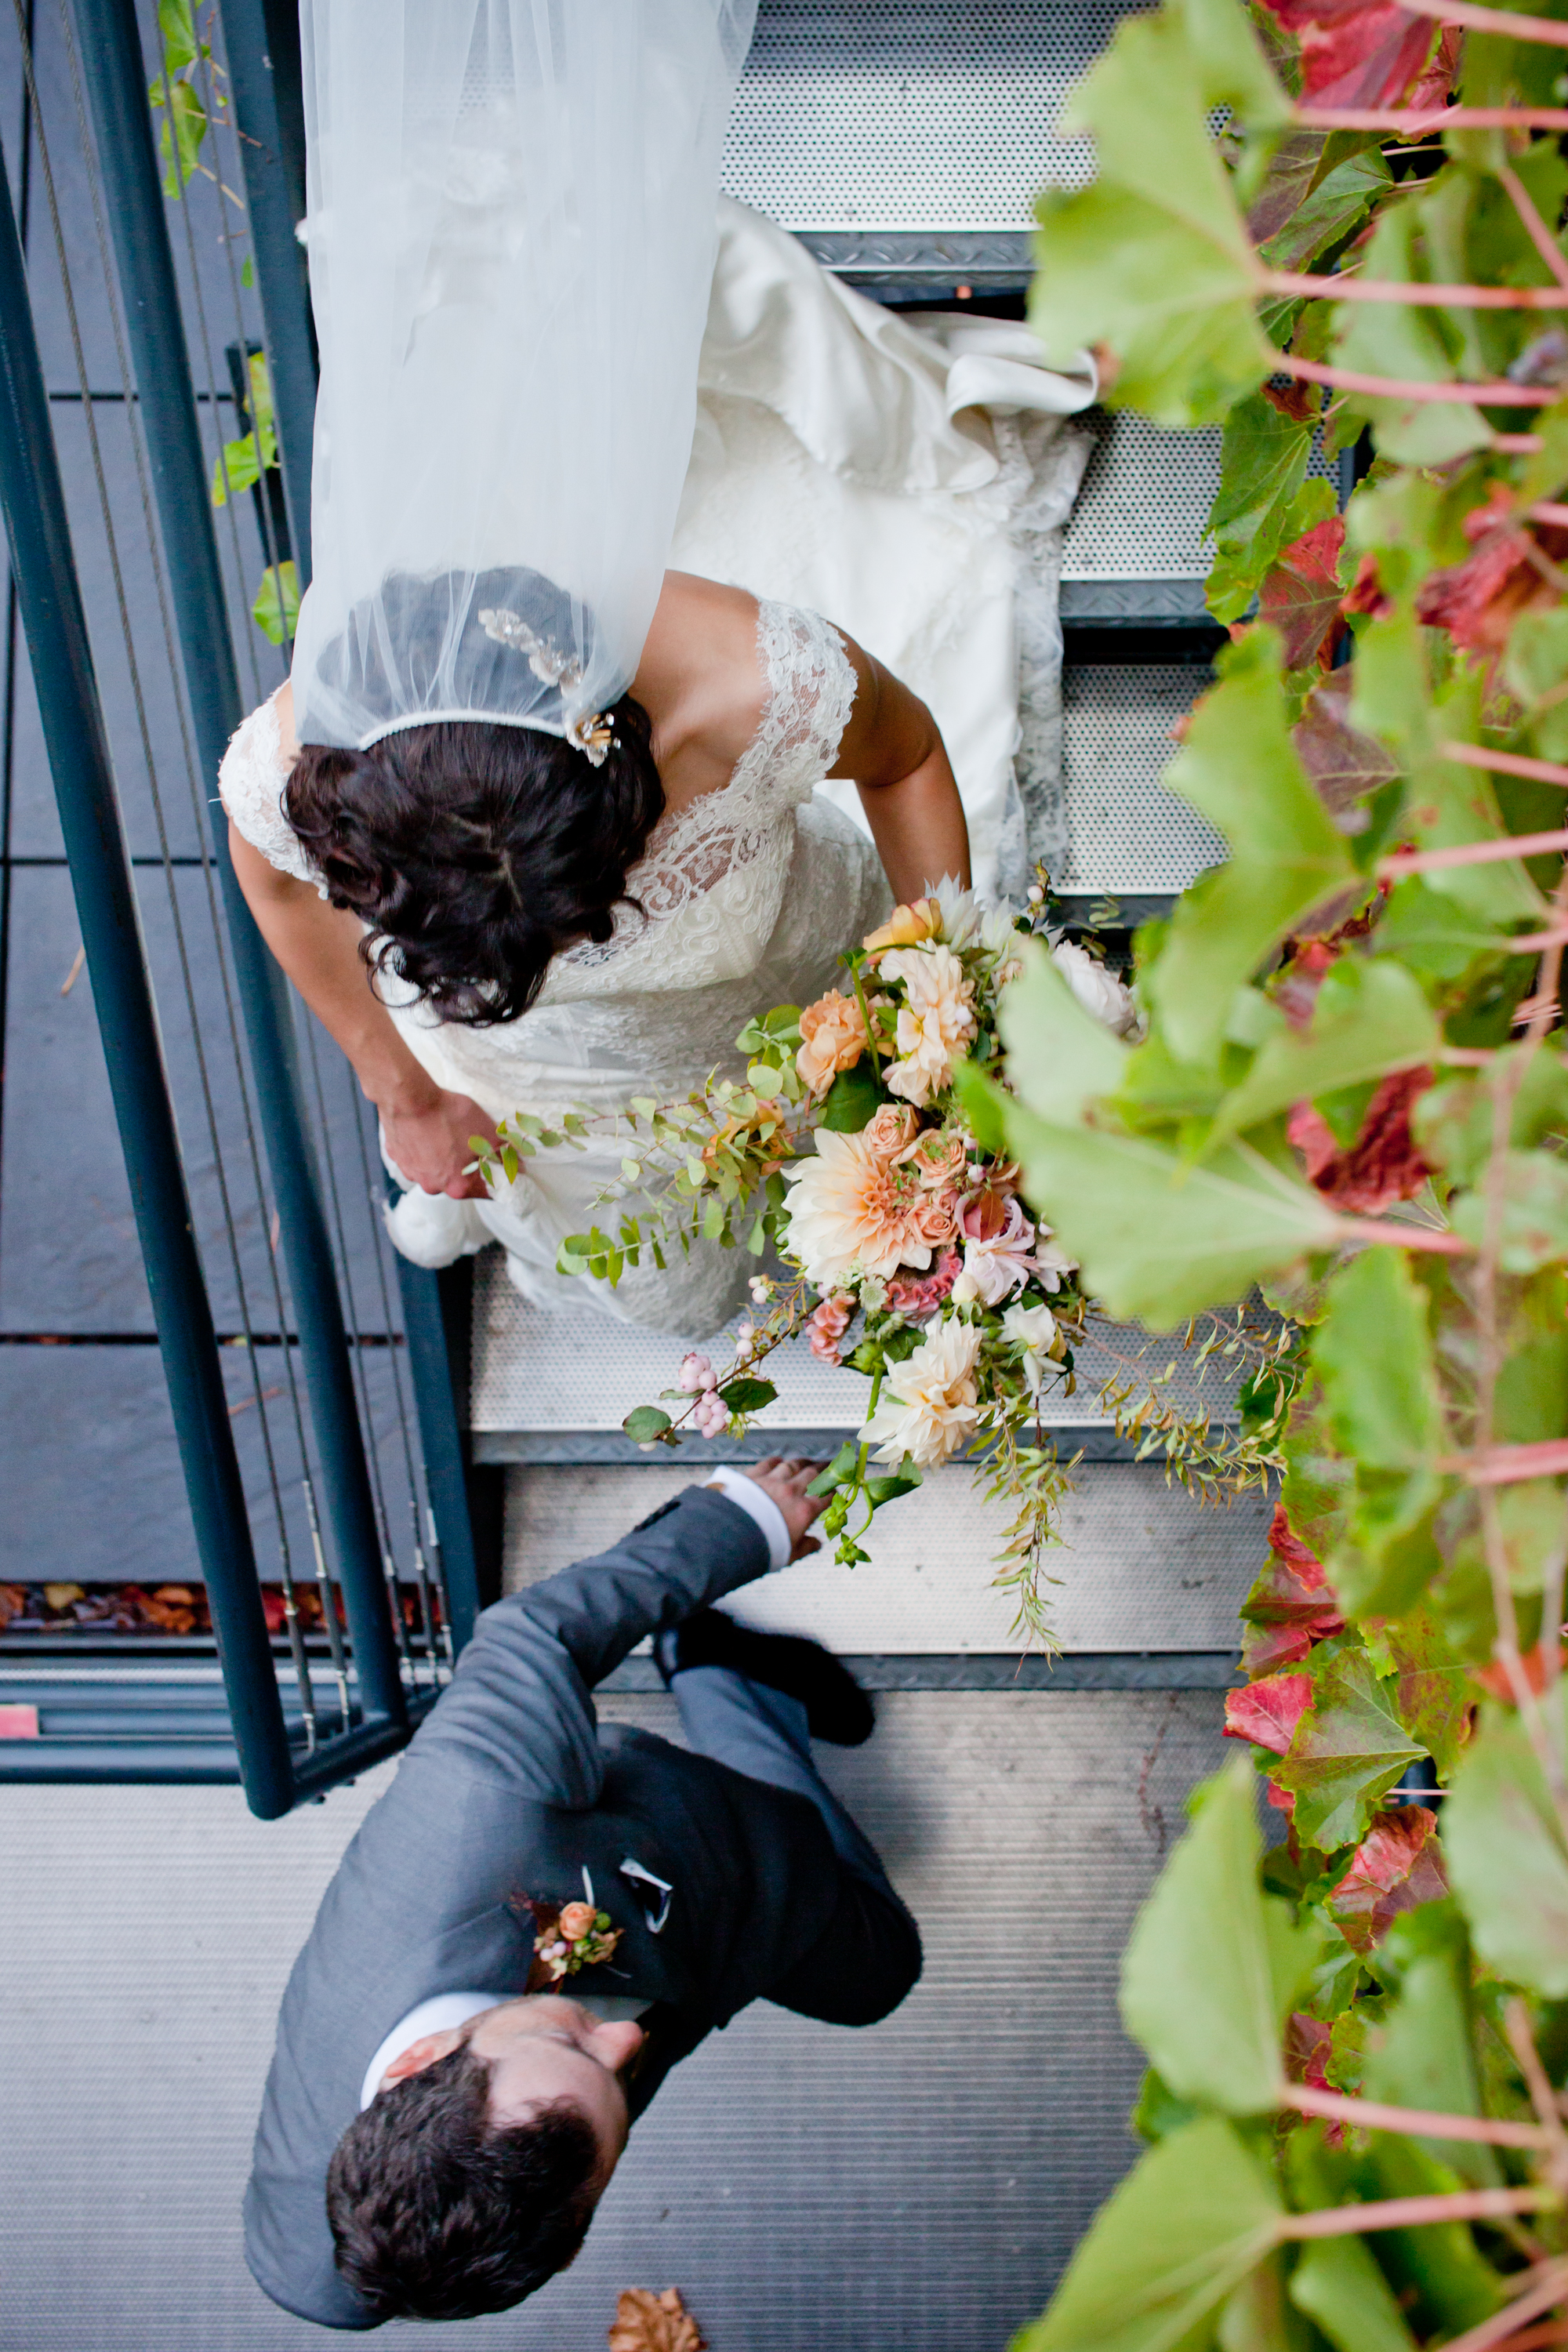 066_CarlyGaebe_SteadfastStudio_WeddingPhotography_Readyluck_NewYorkCity_Brooklyn_LongIslandCity_TheFoundry_Fall_AltaModaBridal_Bride_Groom_Rooftop_Bouquet.jpg